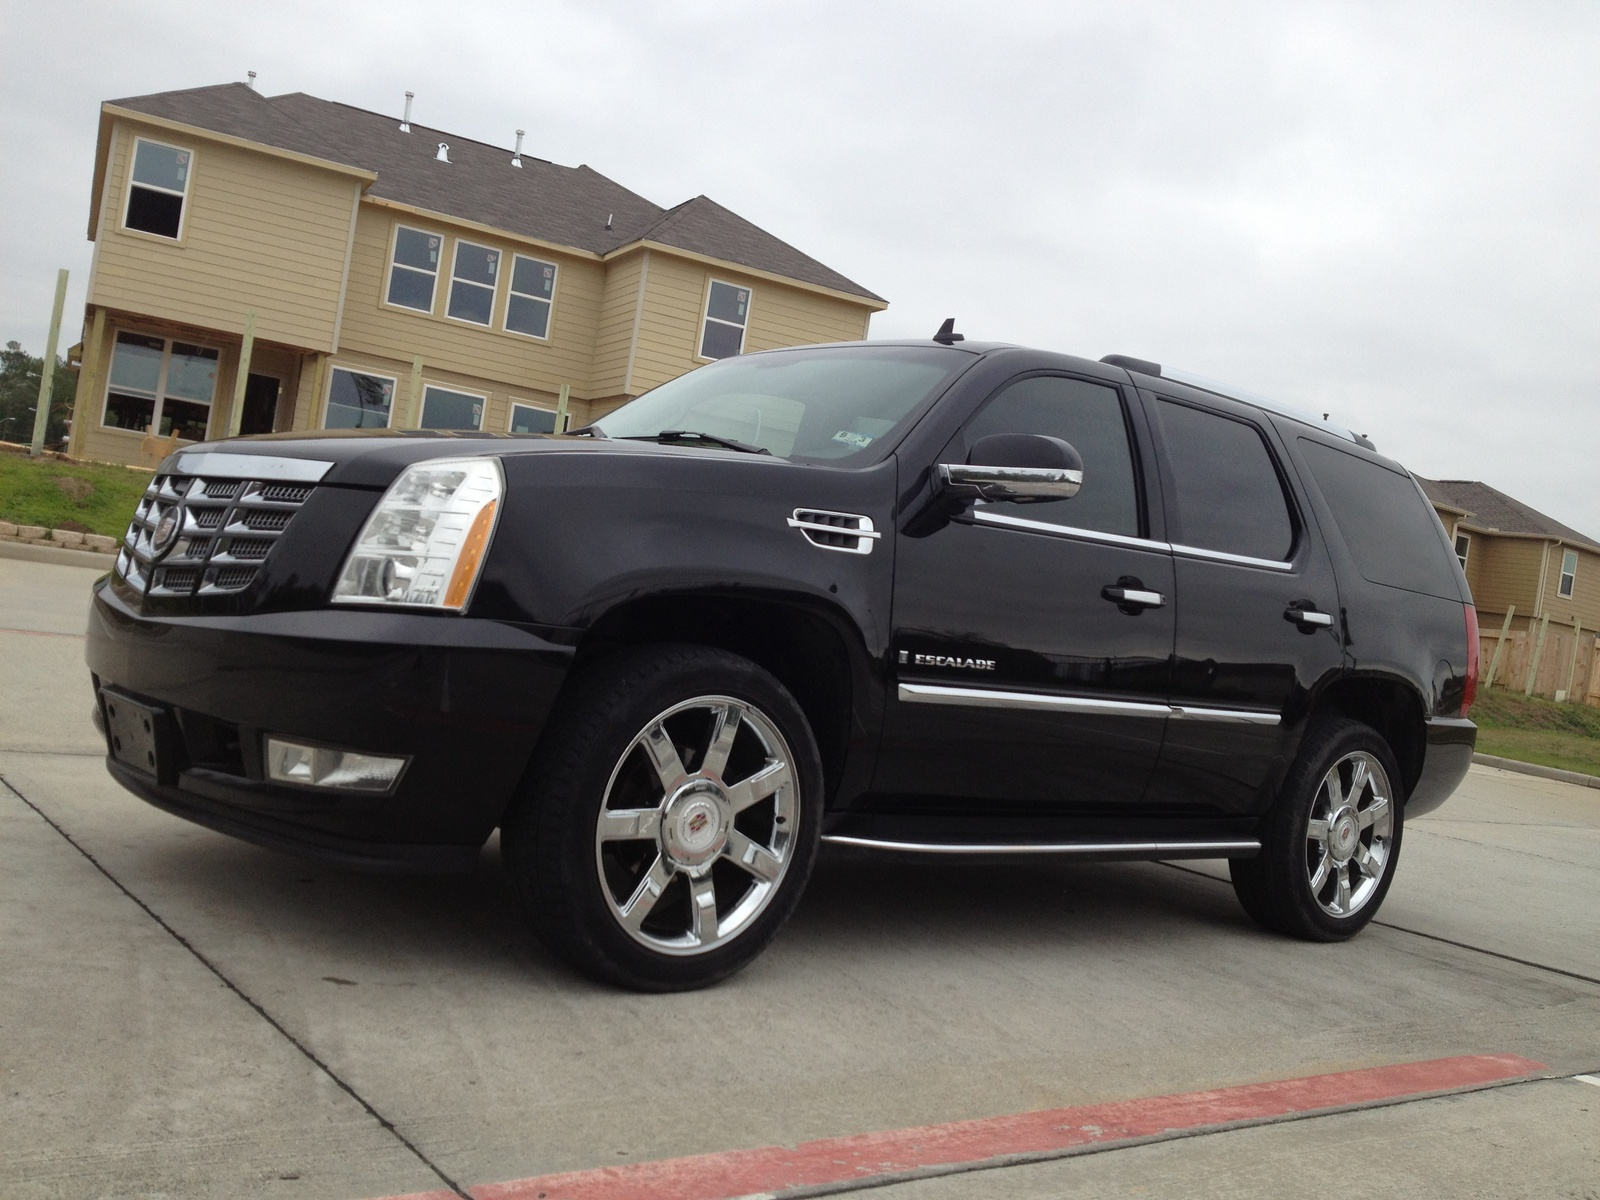 2007 cadillac escalade pictures cargurus. Black Bedroom Furniture Sets. Home Design Ideas